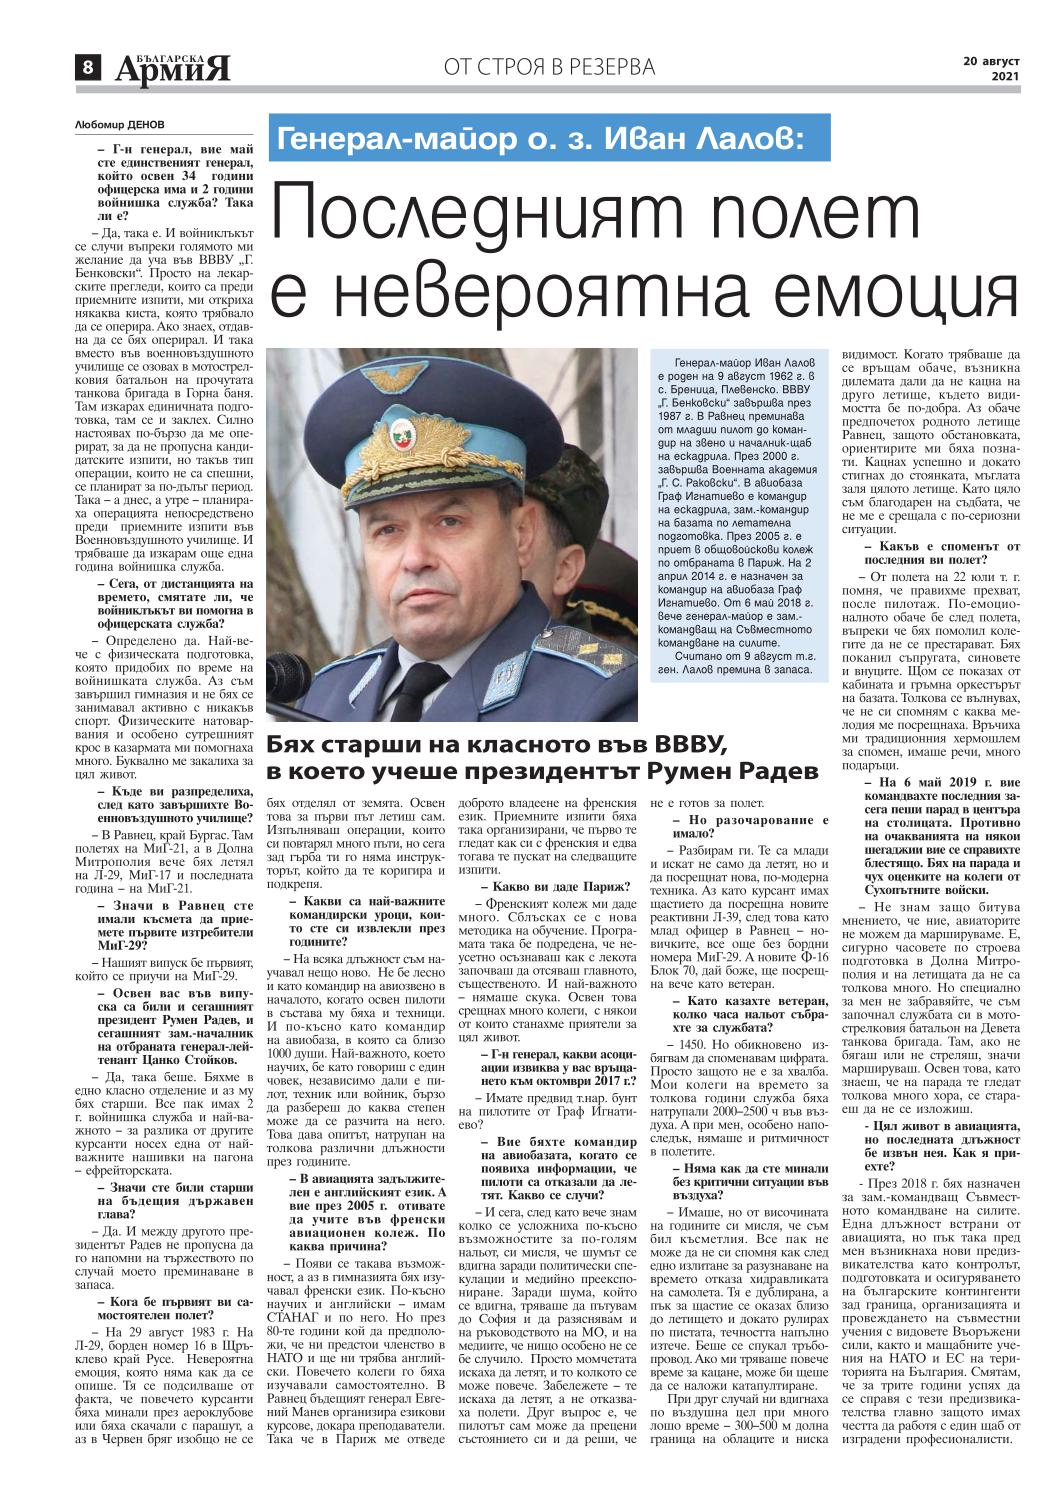 https://armymedia.bg/wp-content/uploads/2021/08/08.page1_-2.jpg